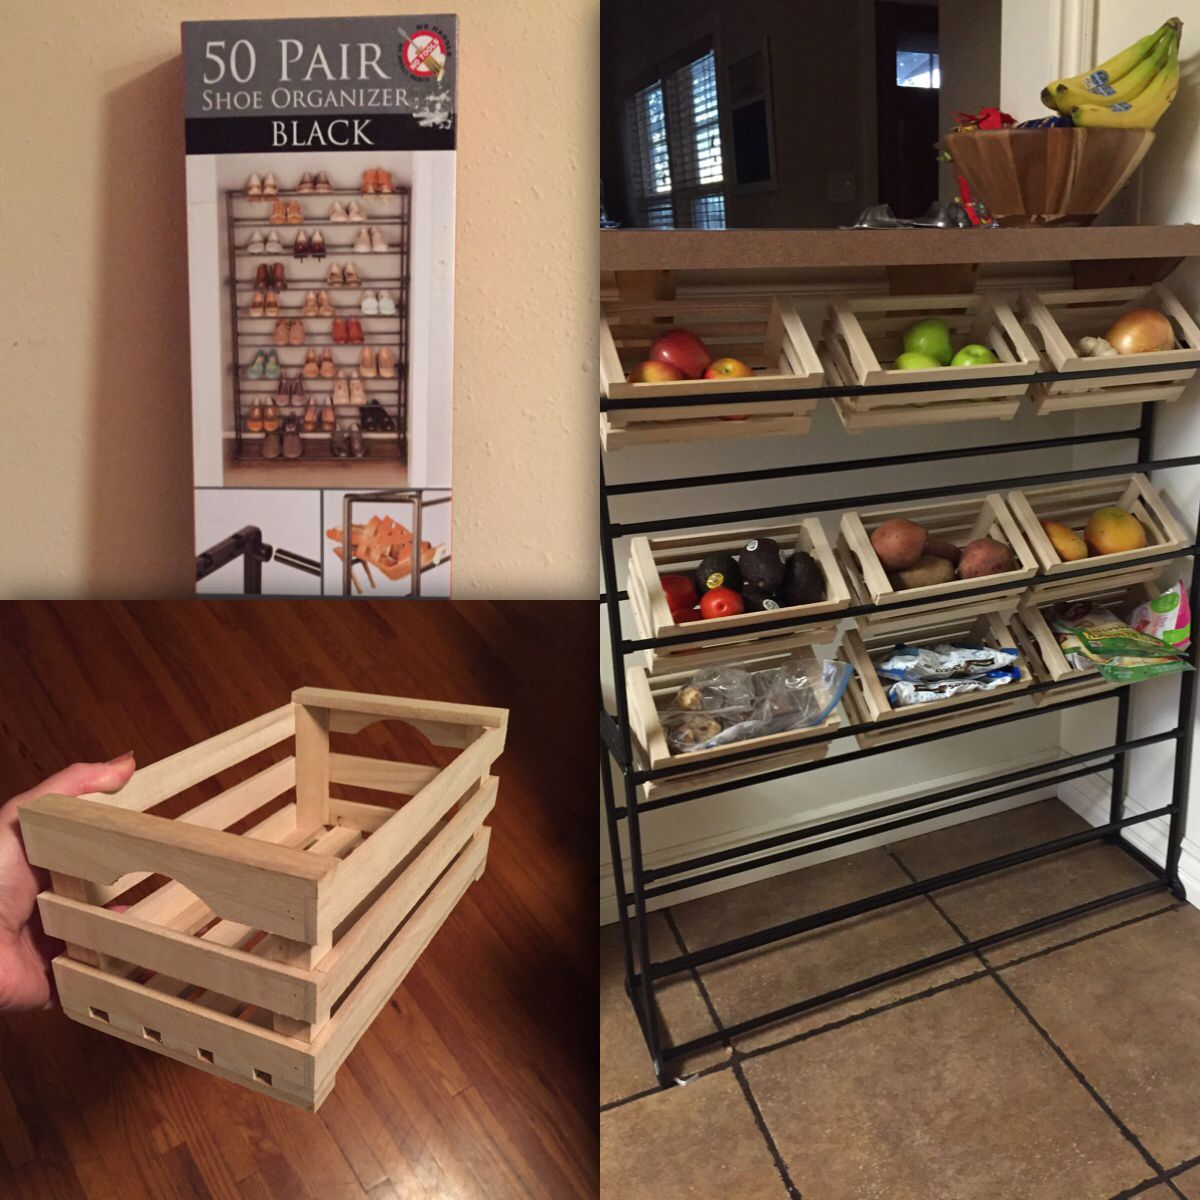 Kitchen Pantry Hacks: Kitchen/storage Hack: Shoe Rack + Mini Crates From Daiso ($1.50 Each) = Produce Rack